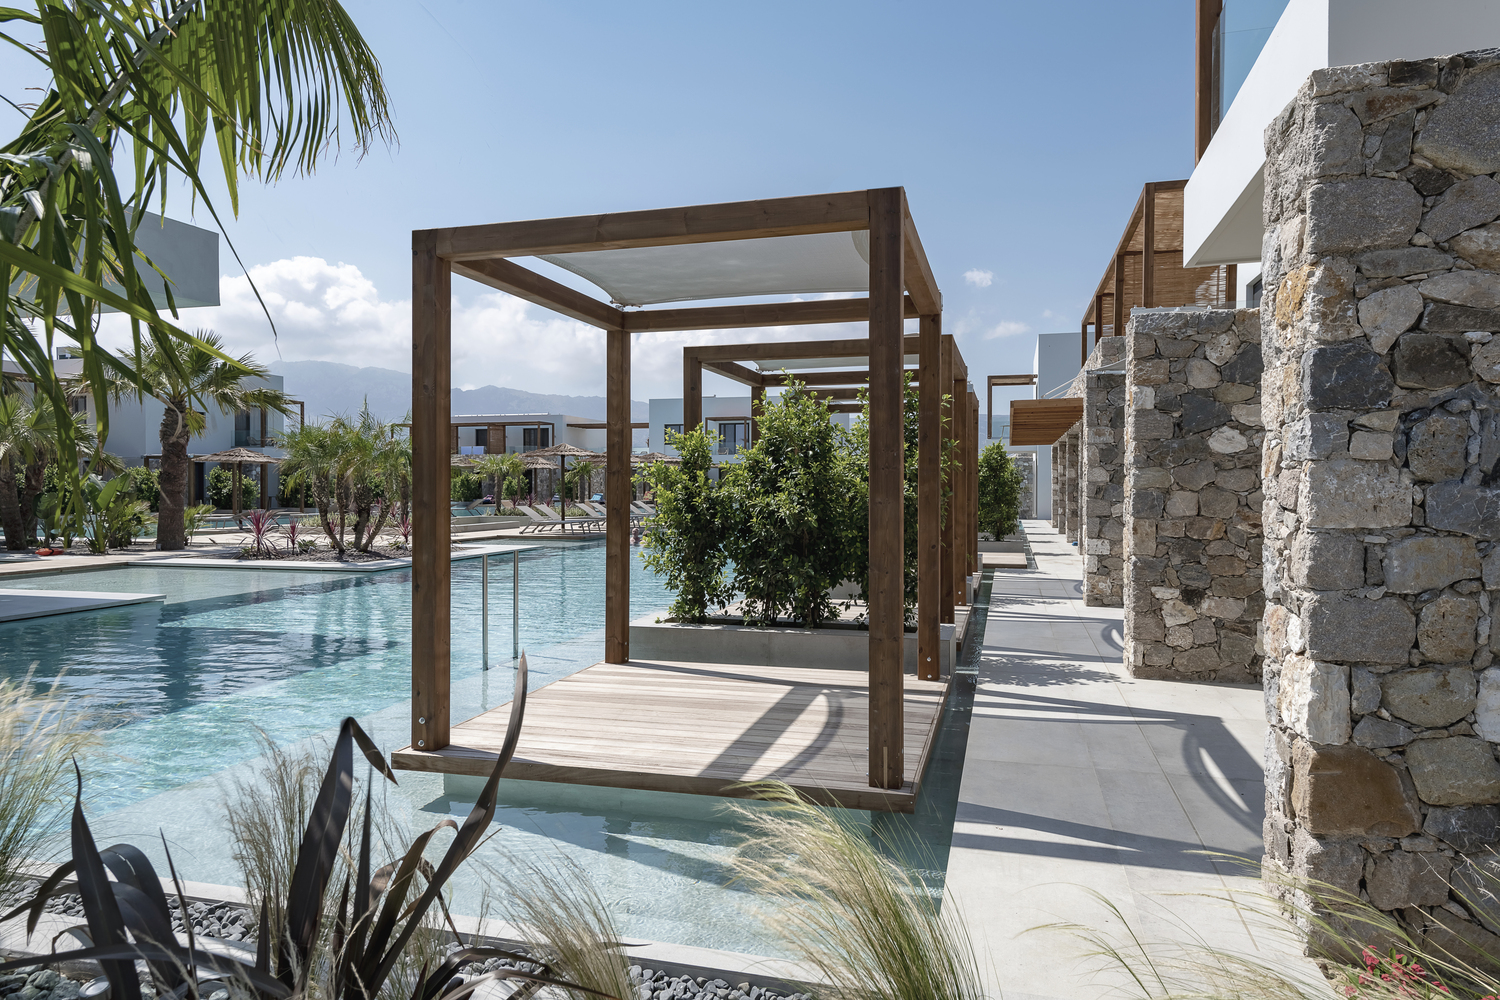 Caravia Beach Junior Suites & Restaurant / Mastrominas ARChitecture